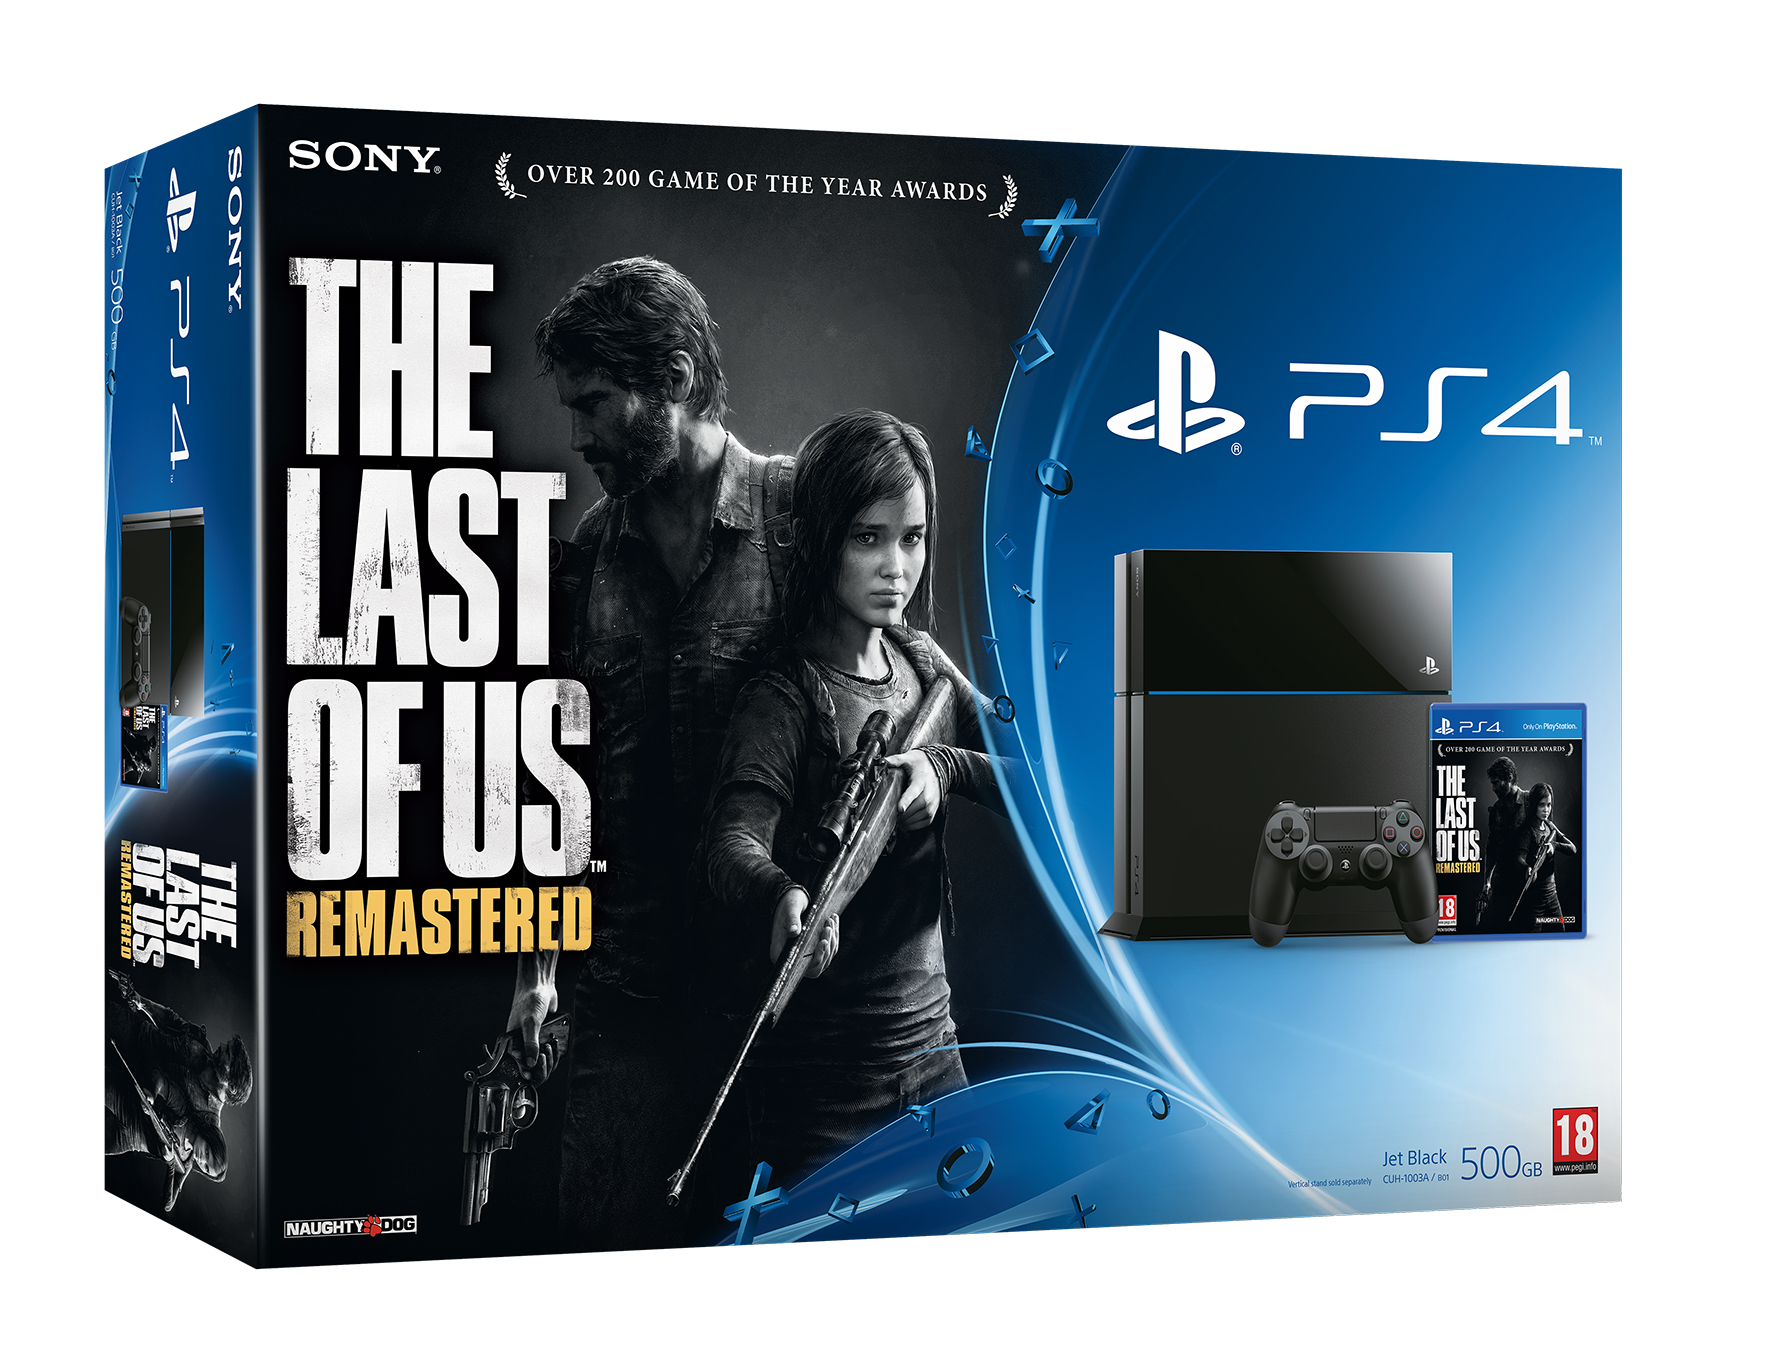 TLOU PS4 bundle